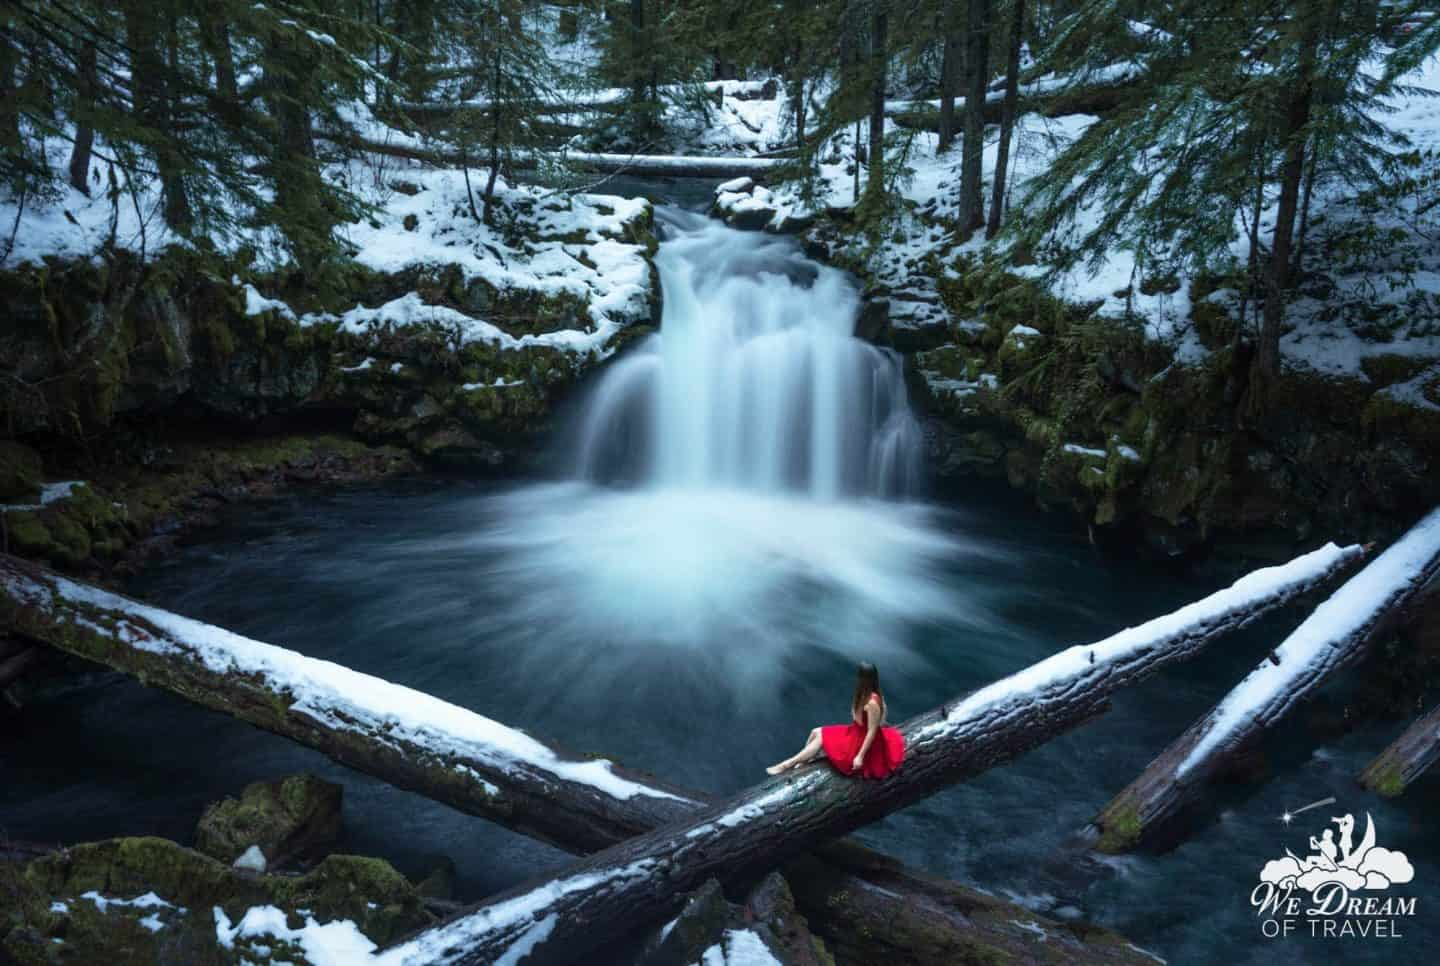 Sophie adds a pop of color and magic to the beautiful scenery at Whitehorse Falls, Oregon.